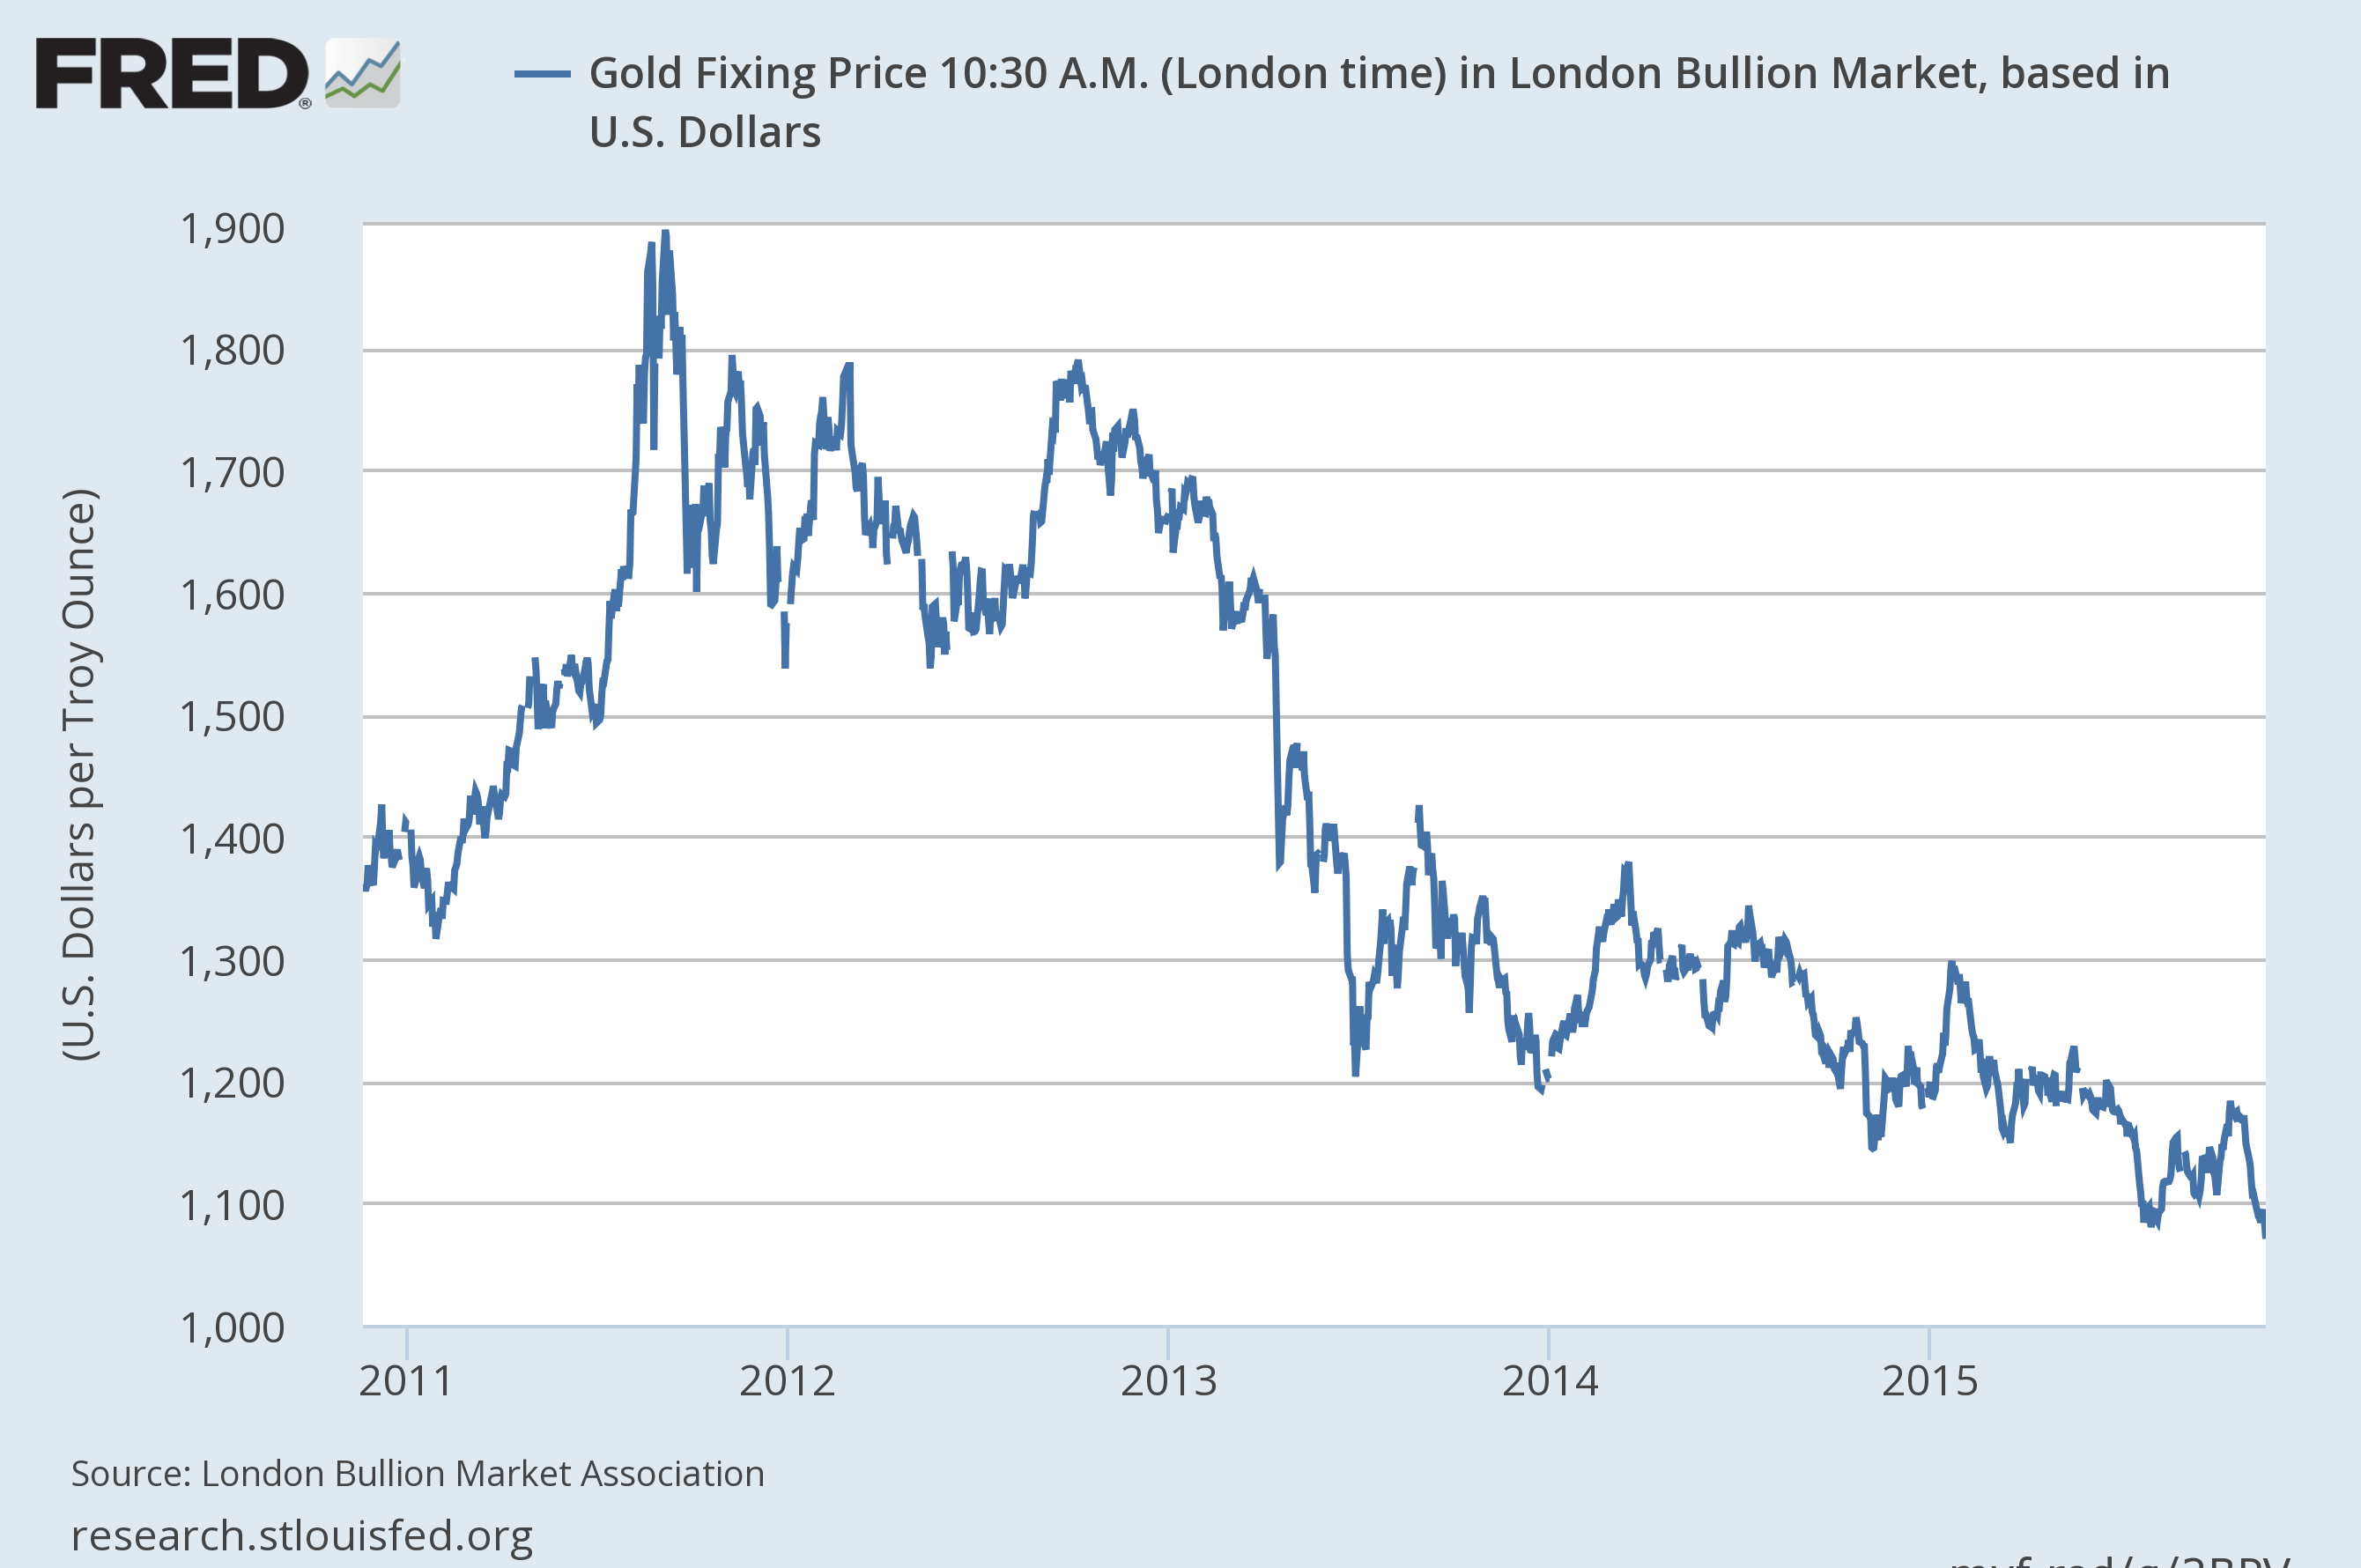 Chart of the widely fluctuation price of gold